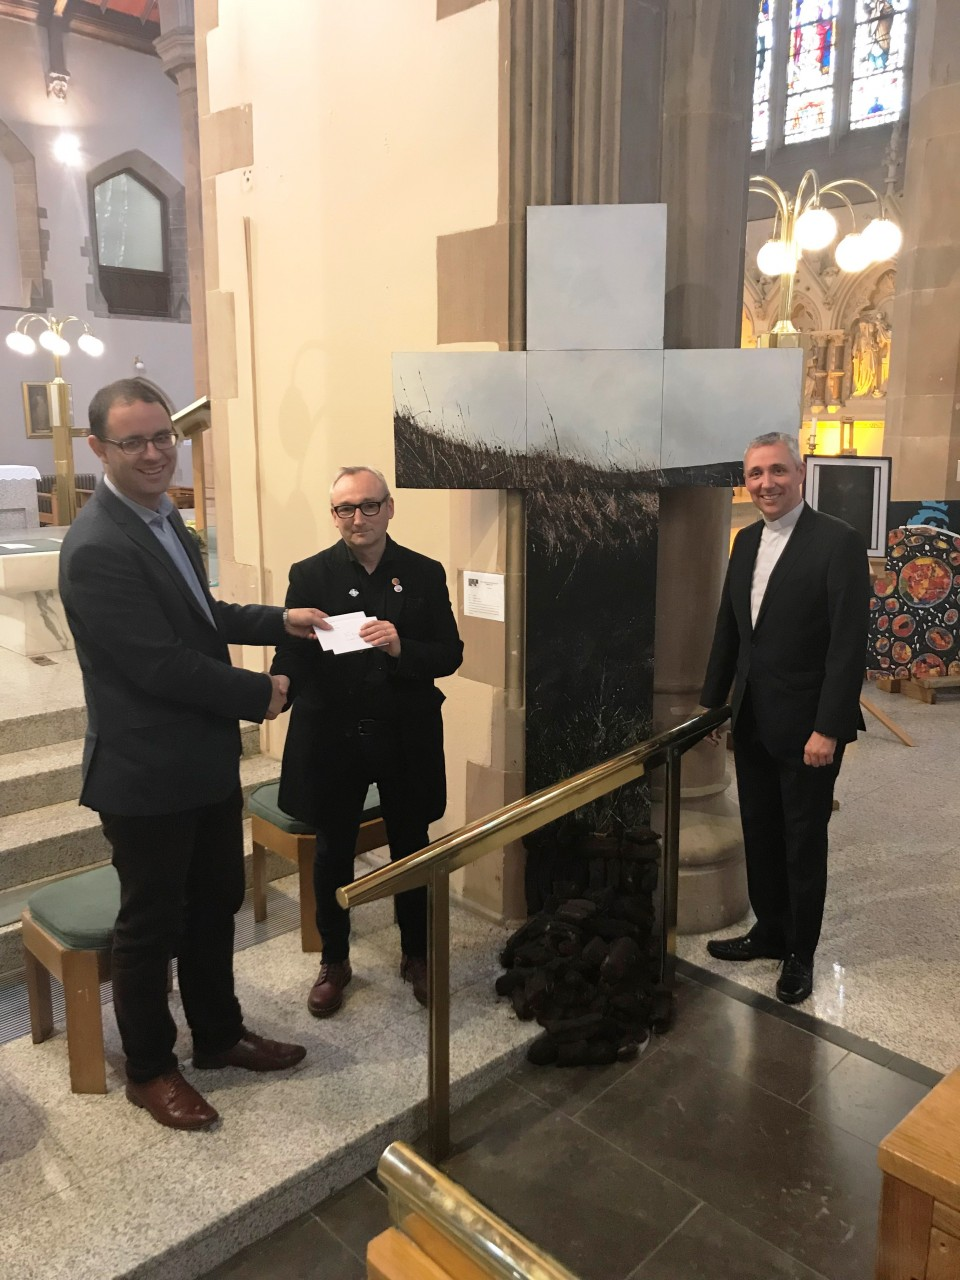 The Sister Aloysius Memorial Prize for Religious Art 2018